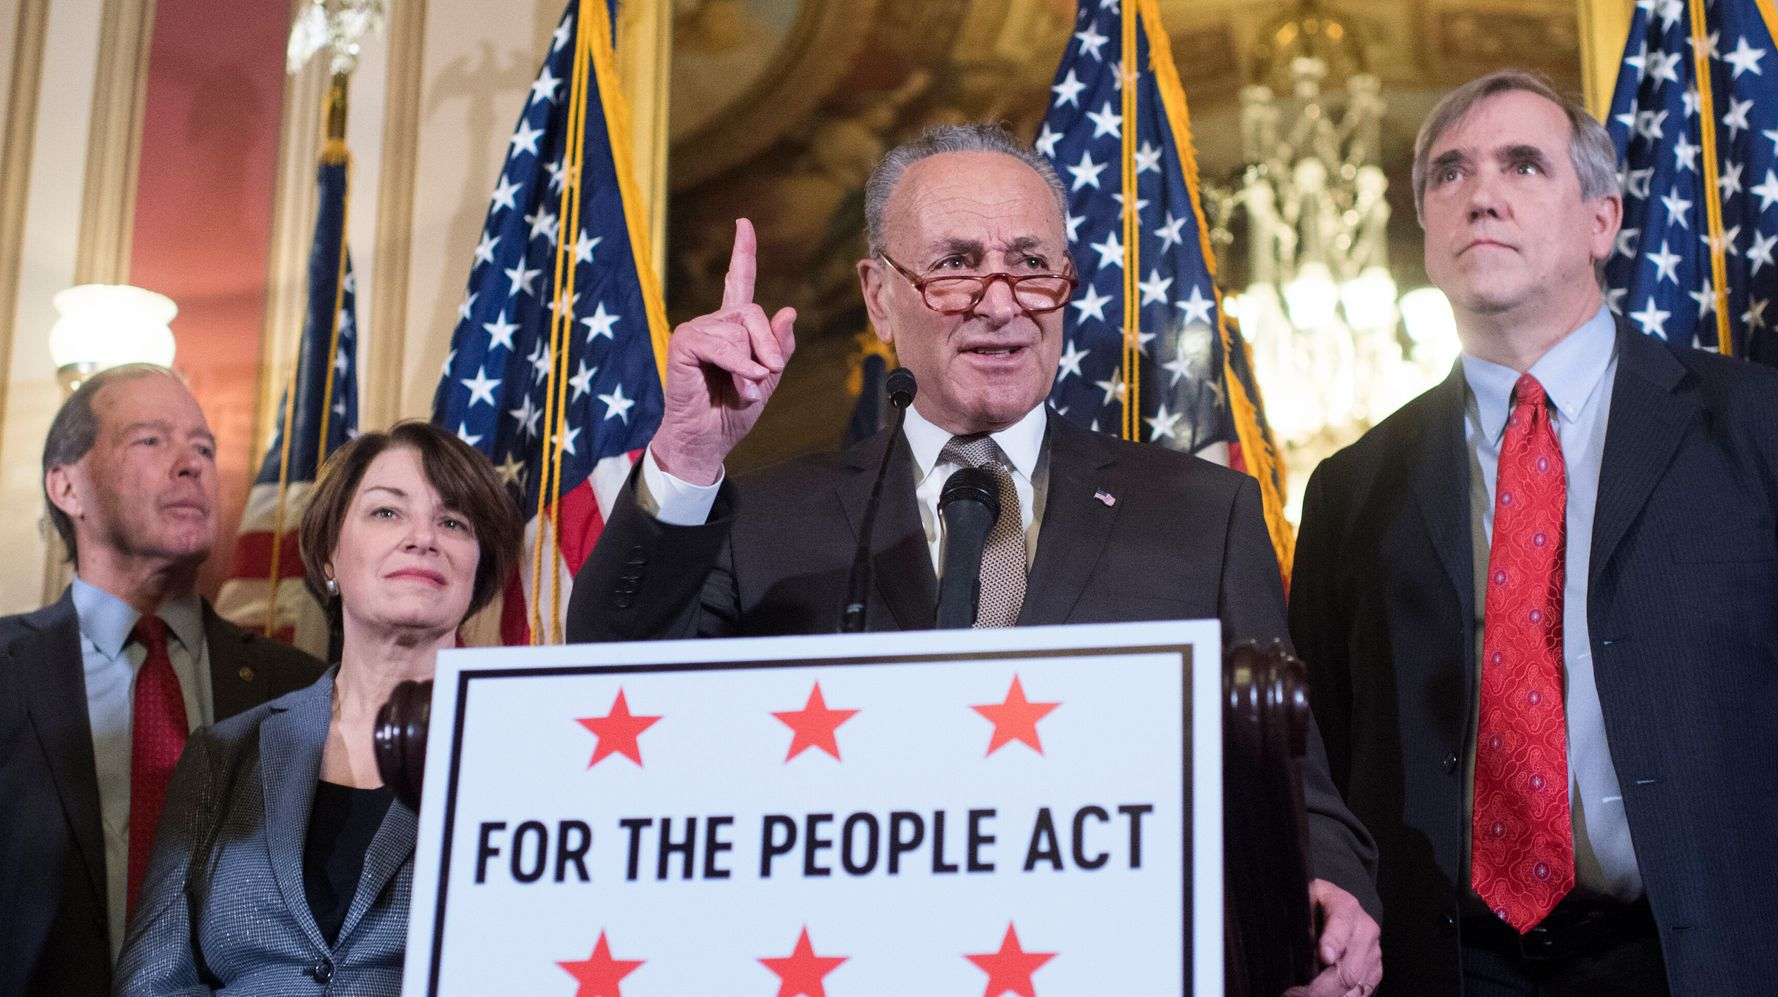 Senate Democrats Announce First Order Of Business For New Majority: Fixing Democracy